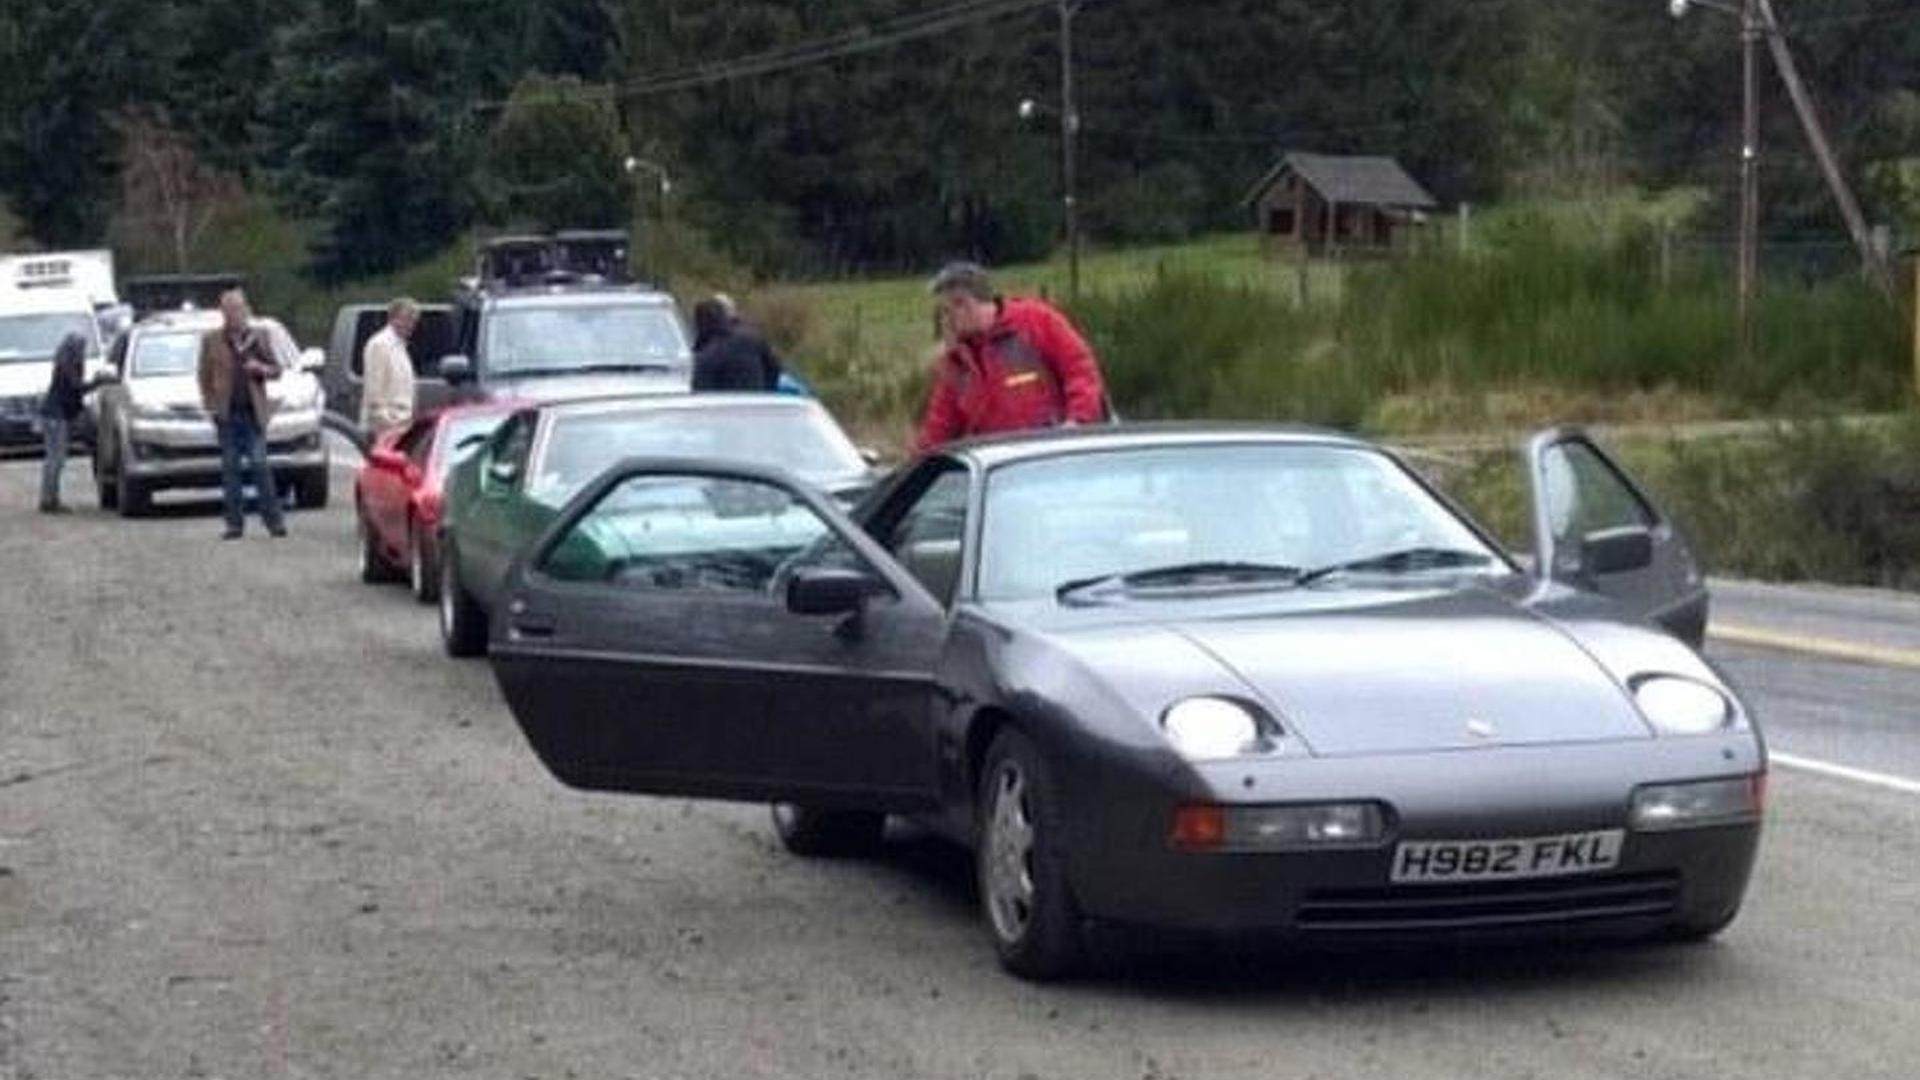 Jeremy Clarkson denies plan to burn the cars used in Patagonia Special